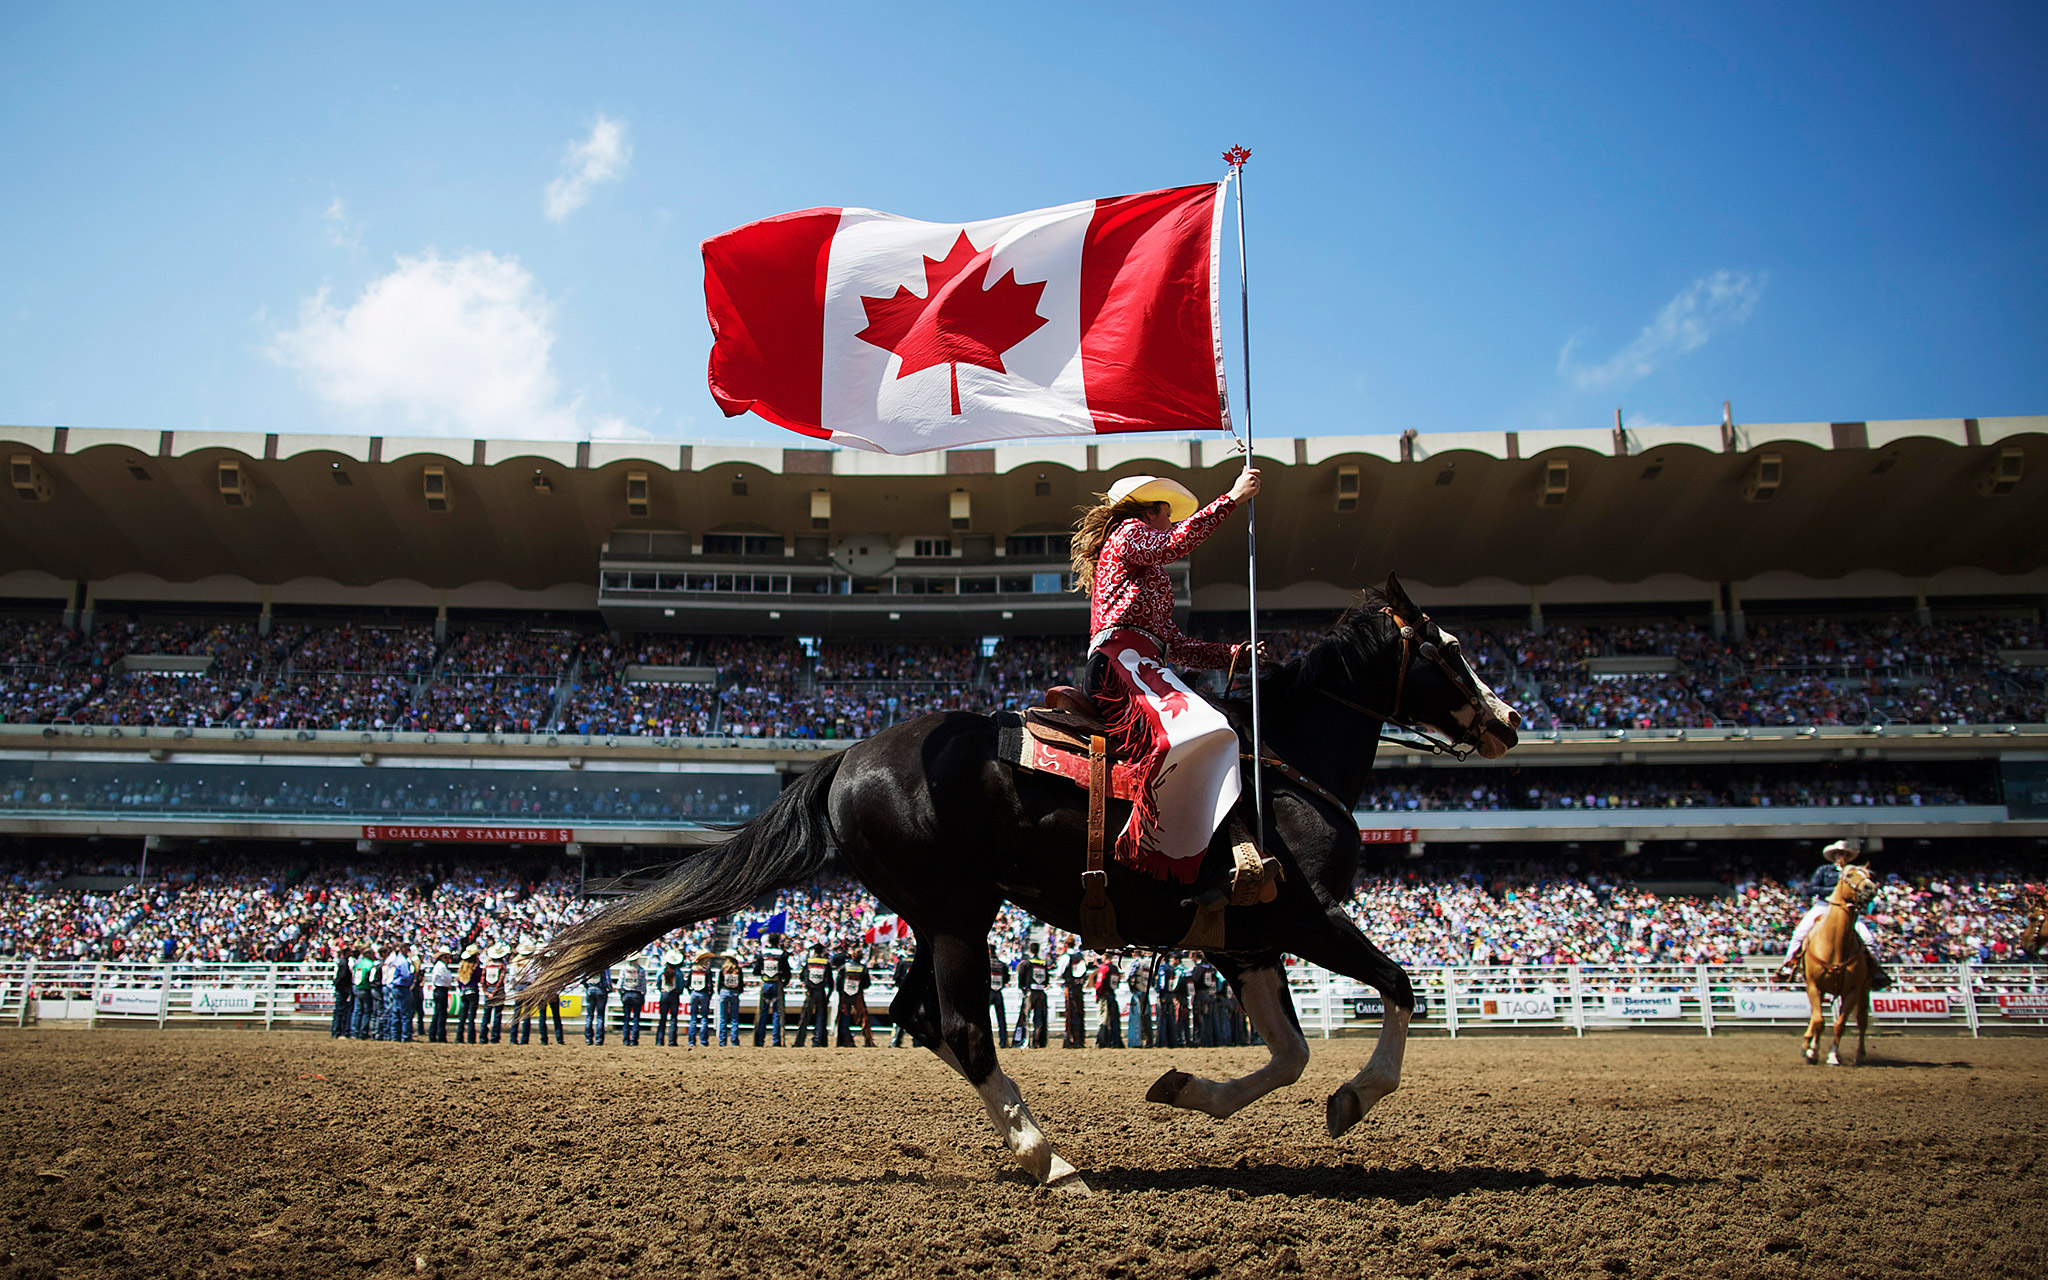 A rodeo girl carries the Canadian flag during the singing of the national anthem during Day 2 of the Calgary Stampede rodeo in Calgary, Alberta.